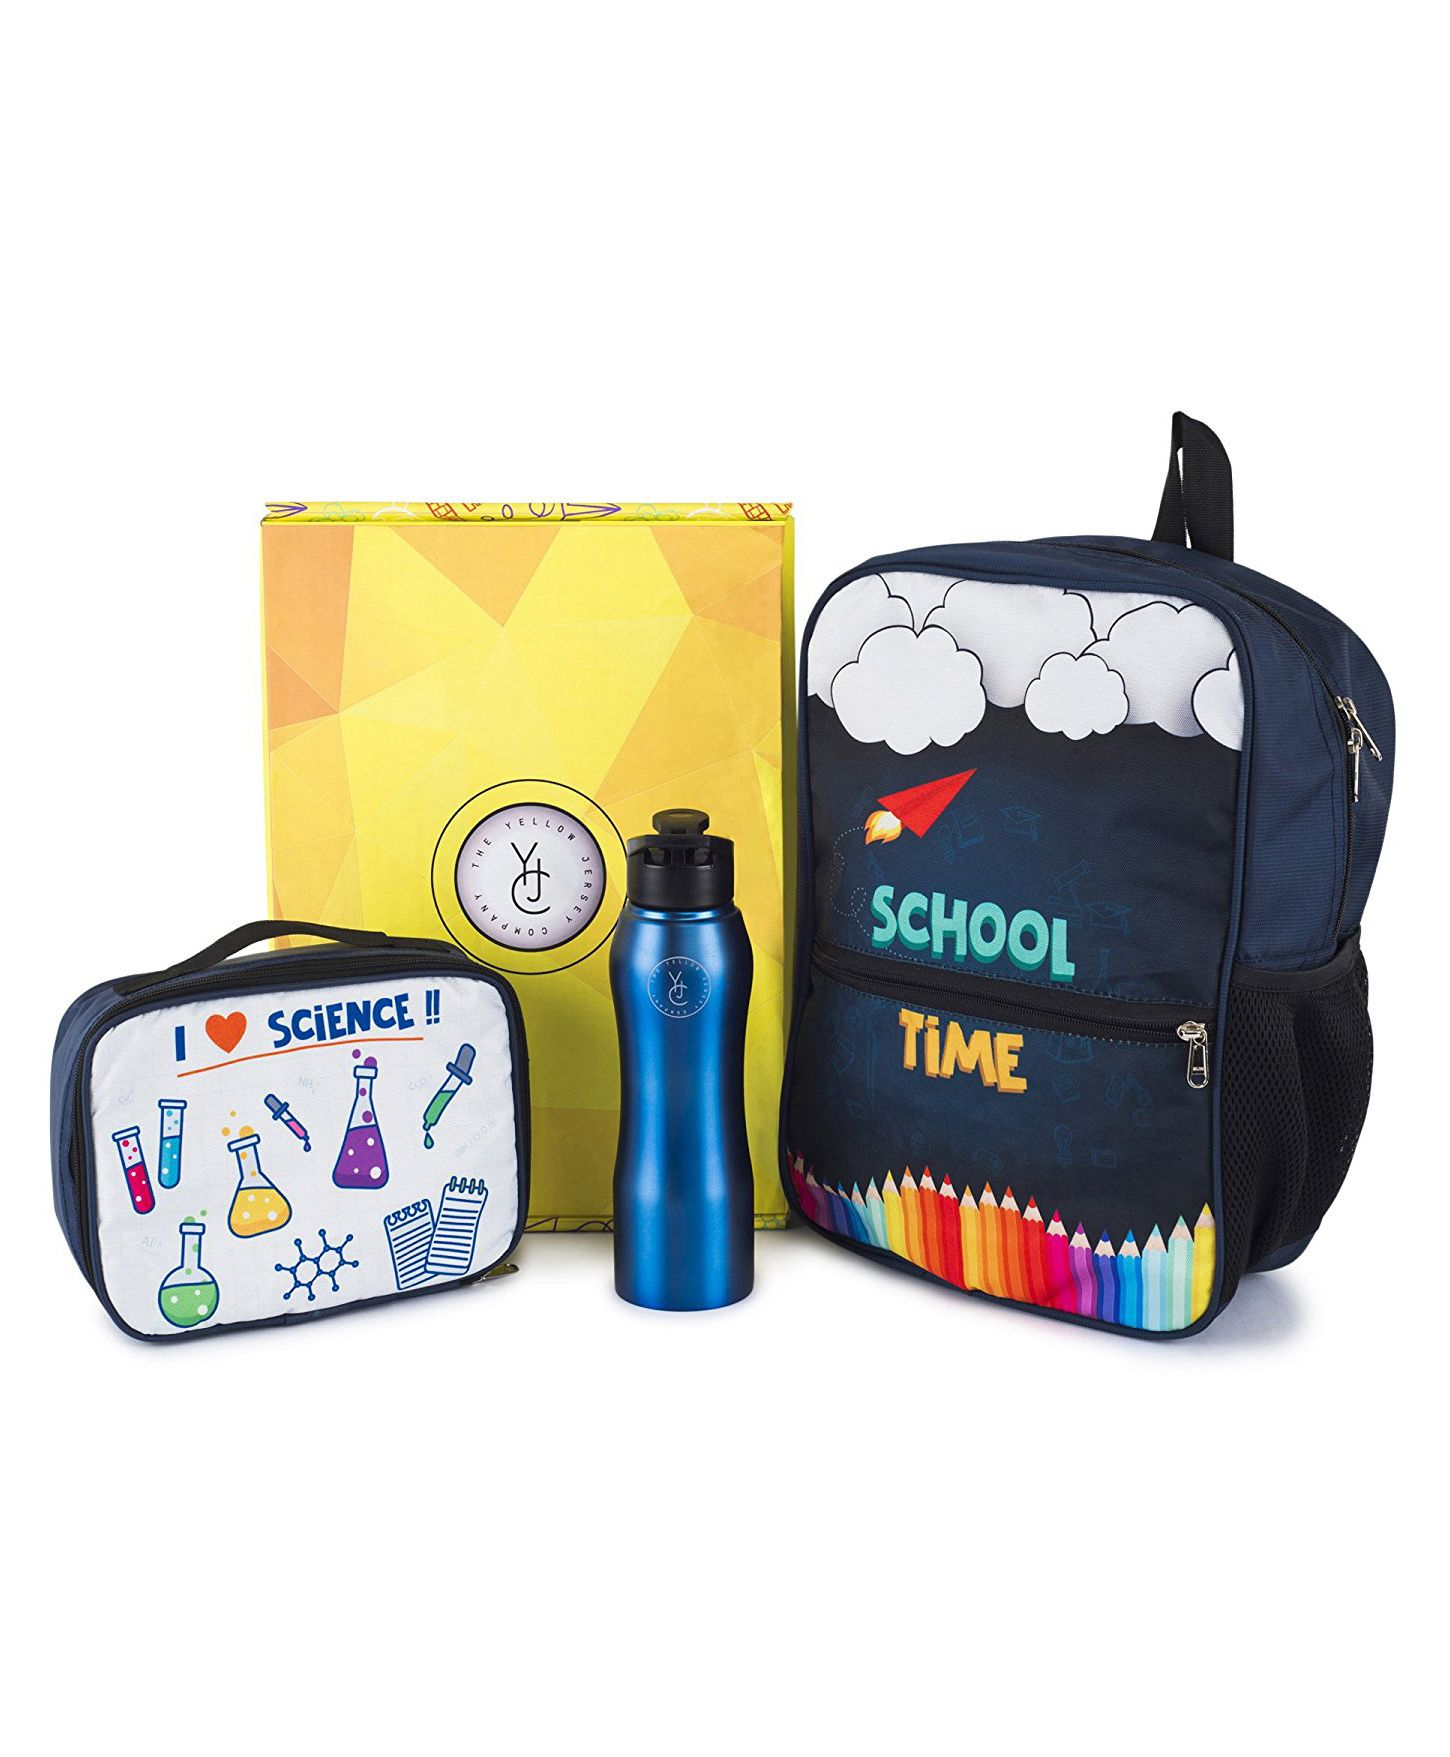 The Yellow Jersey Company School Kit of 3 Scientist Theme - Navy Blue